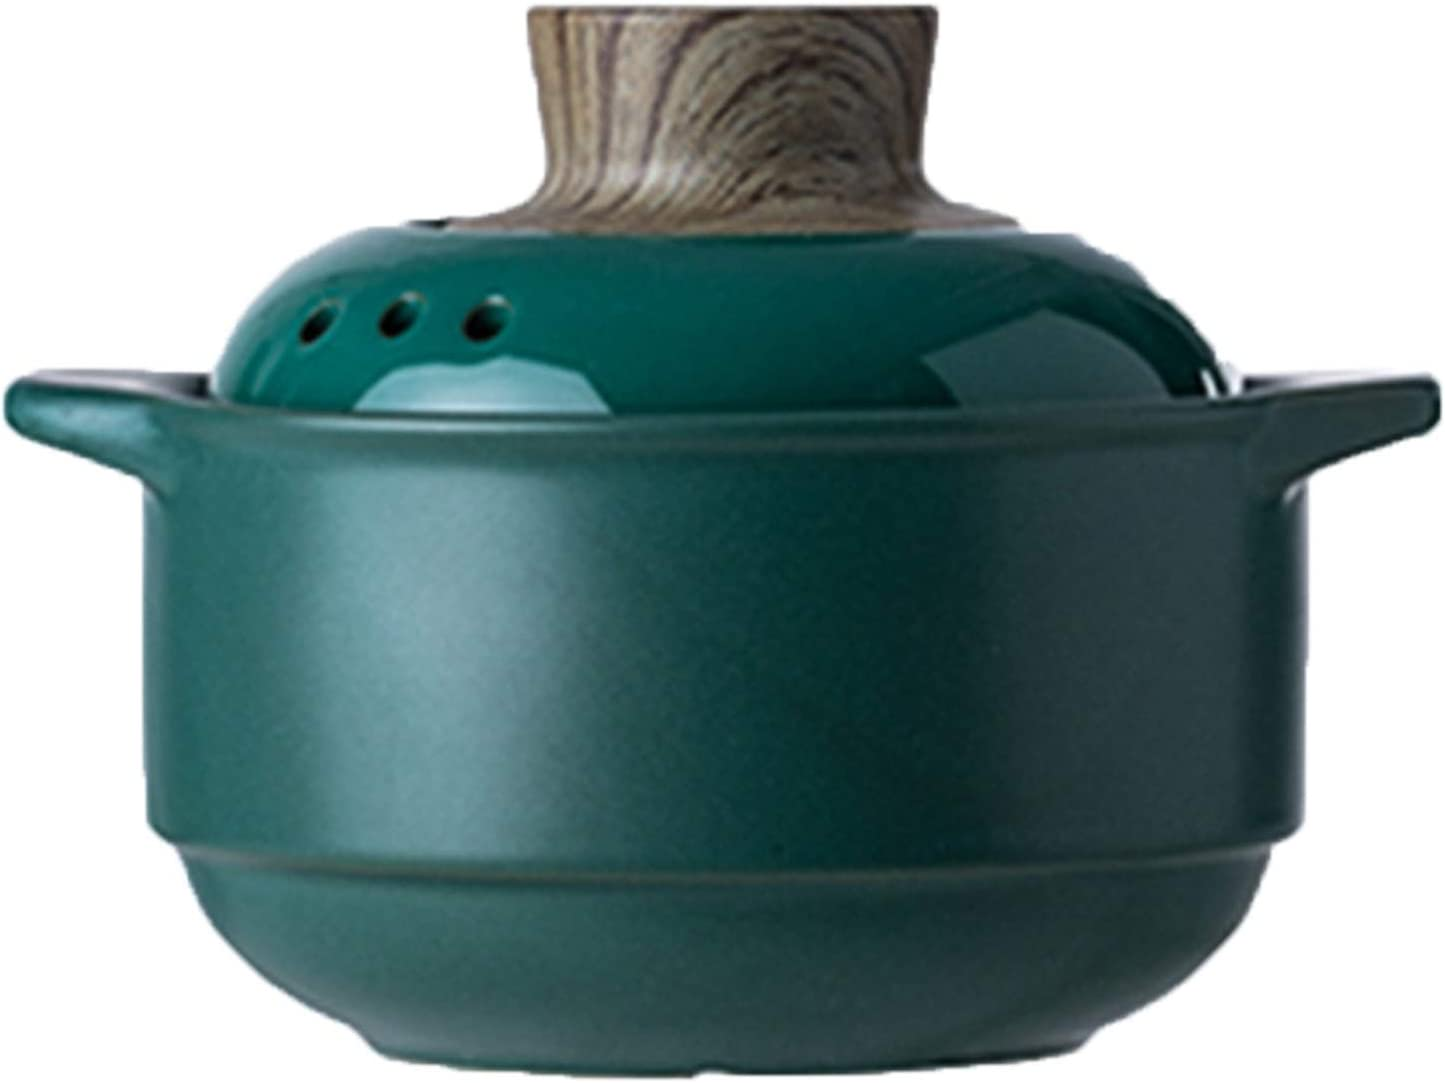 Stockpot Casserole Dish with Lid Round C Dealing full price reduction Dallas Mall Earthenware Pot Classic